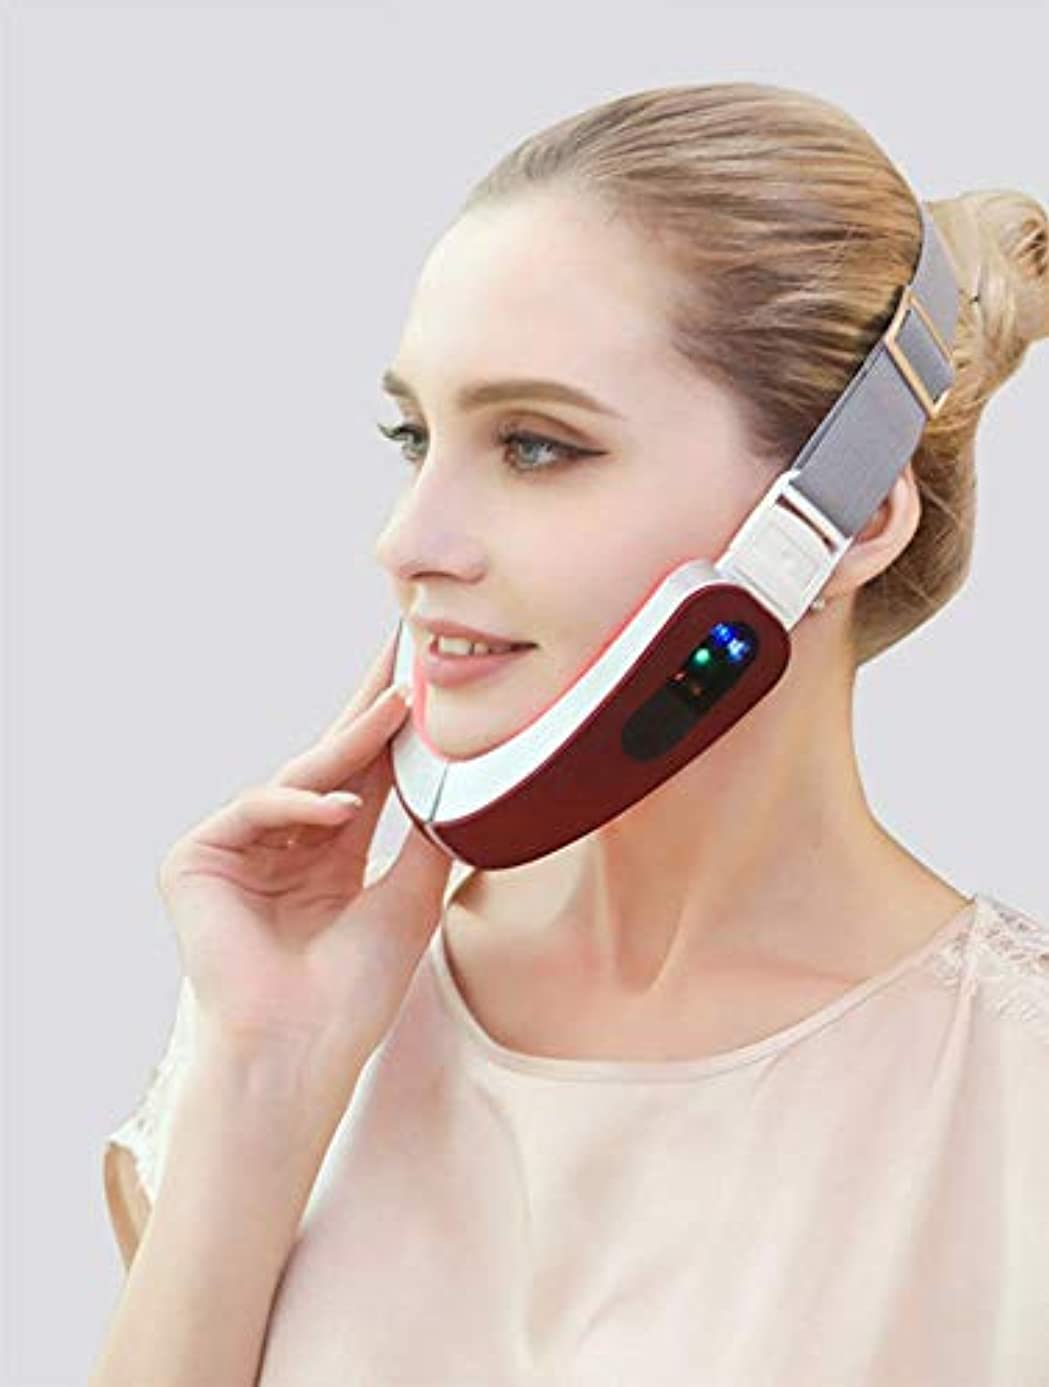 ハードウェア運営一回Nfudishpu Mart Voice Thin Face Artifact Small V Face Bandage Firming Facial Beauty Bar Photon Rejuvenation Massage...